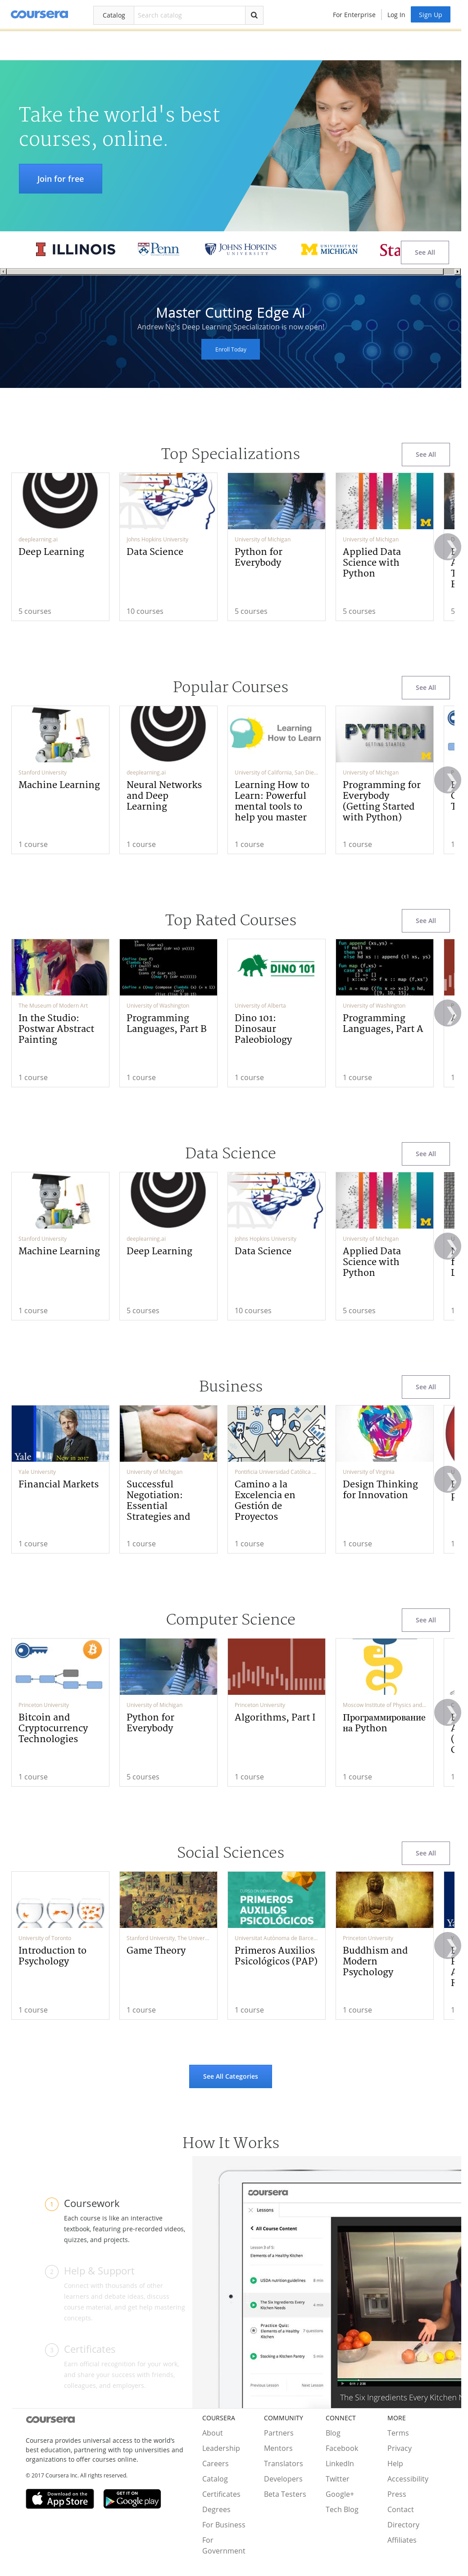 Coursera Competitors, Revenue and Employees - Owler Company Profile